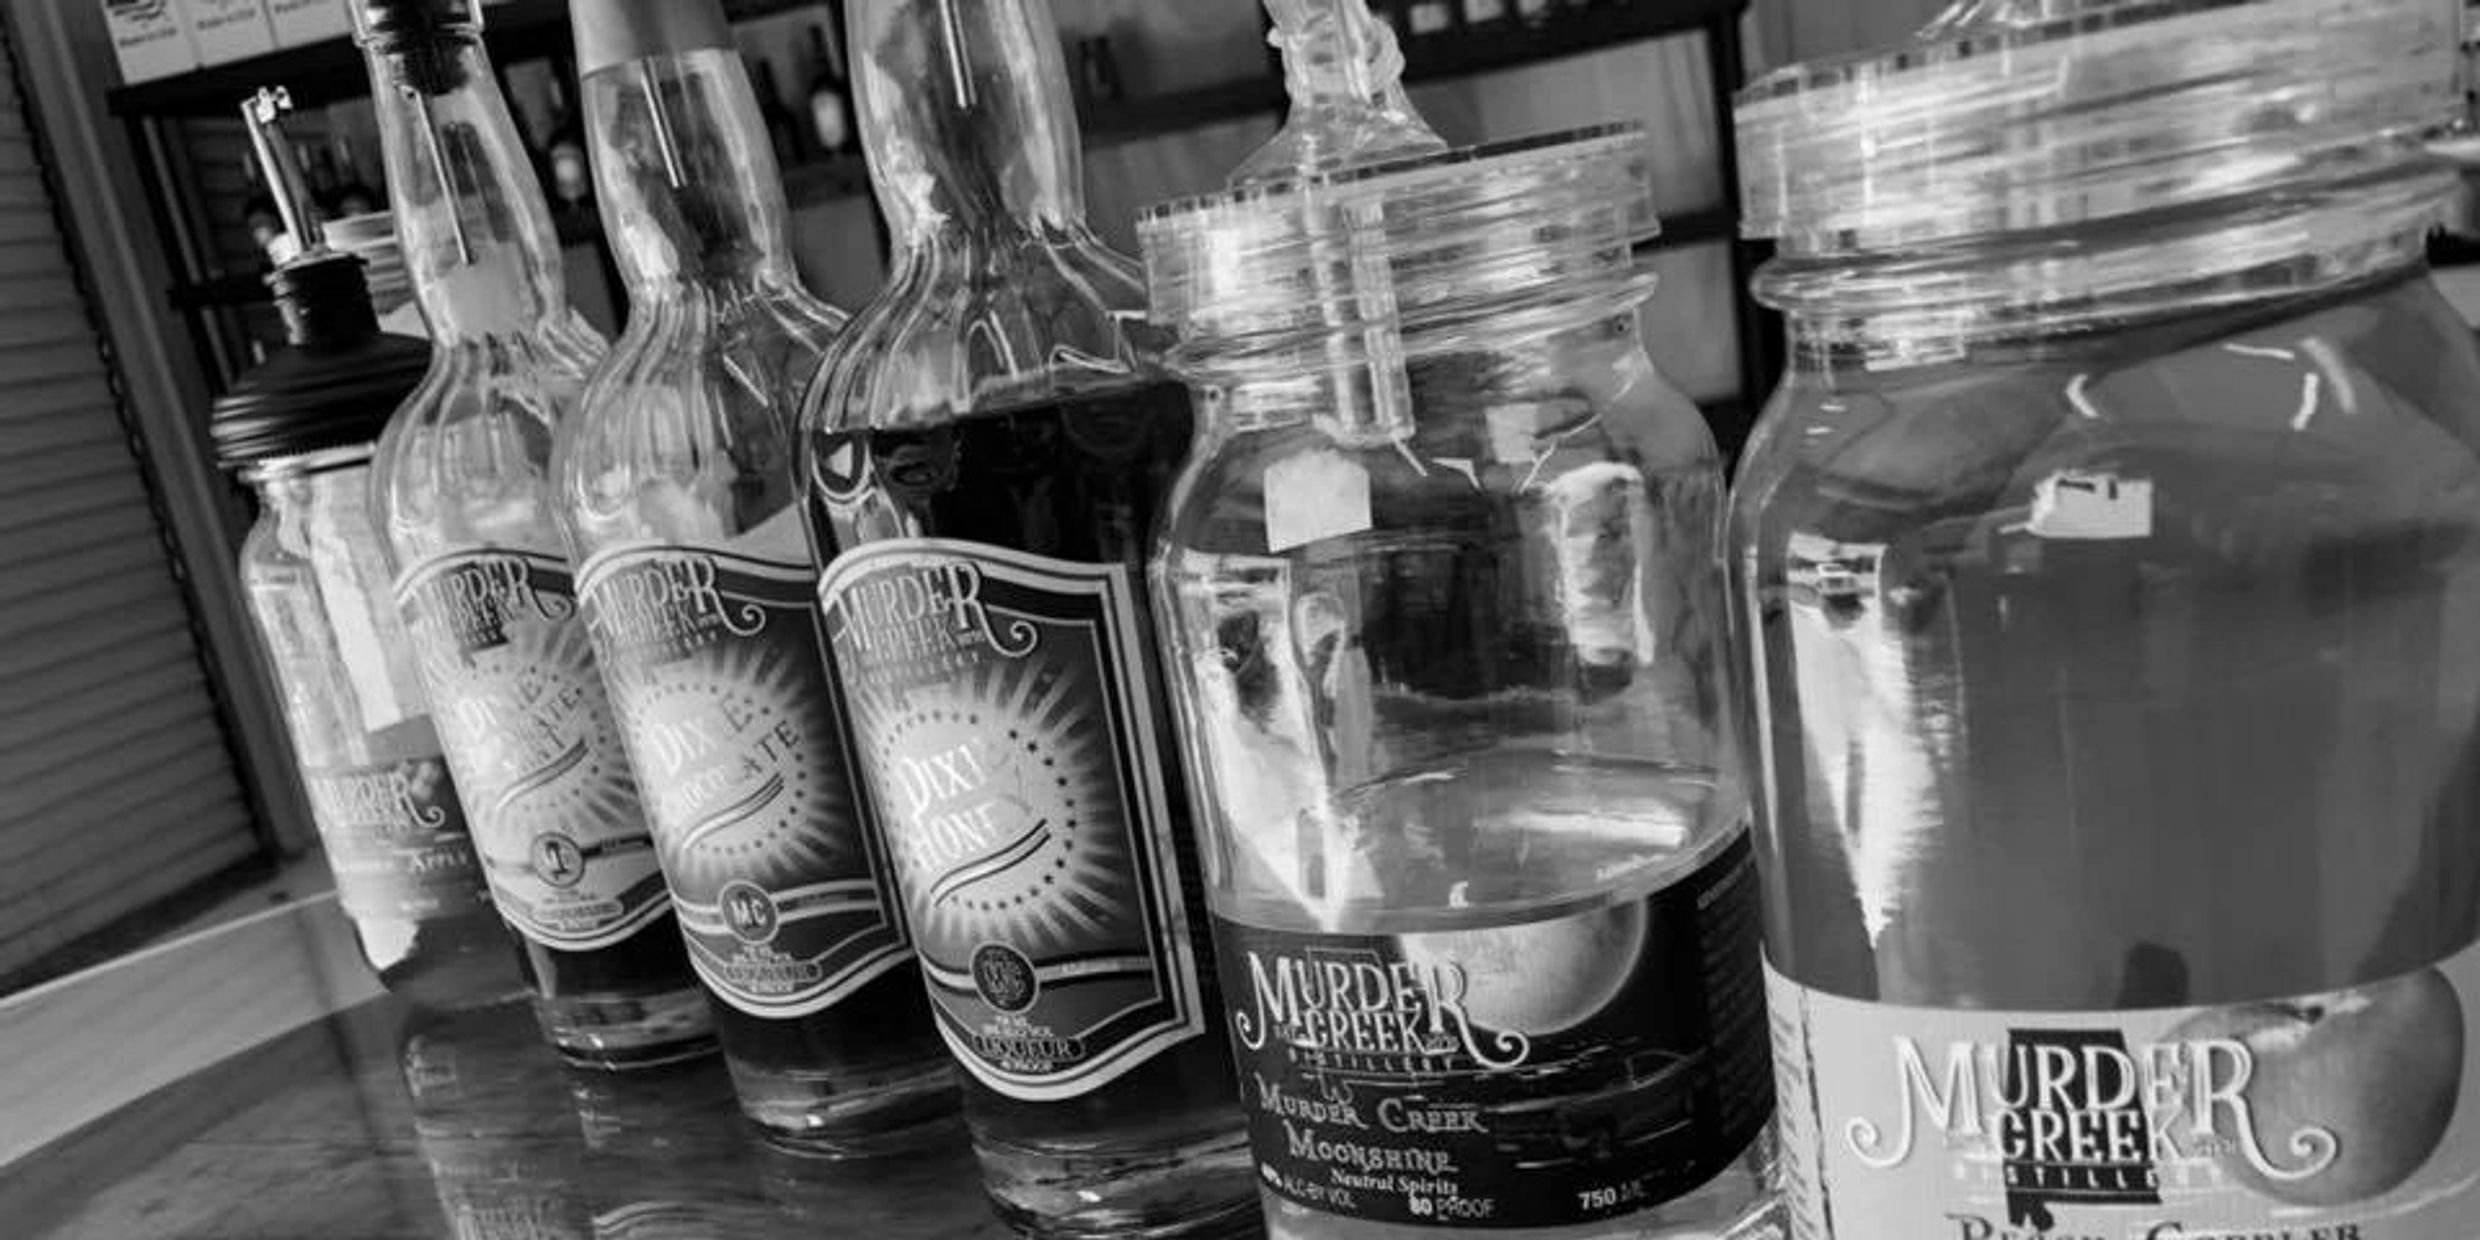 Our Moonshine is crisp and smooth. Our alcohol is distilled to the highest purity in small batches. We use a double distillation process, with each batch being filtered multiple times through charcoal and a unique pour bed to remove impurities. This pure alcohol is bottled at 80 proof as our Murder Creek Moonshine, or cut down to 40 proof and mixed with our special flavors in each batch.